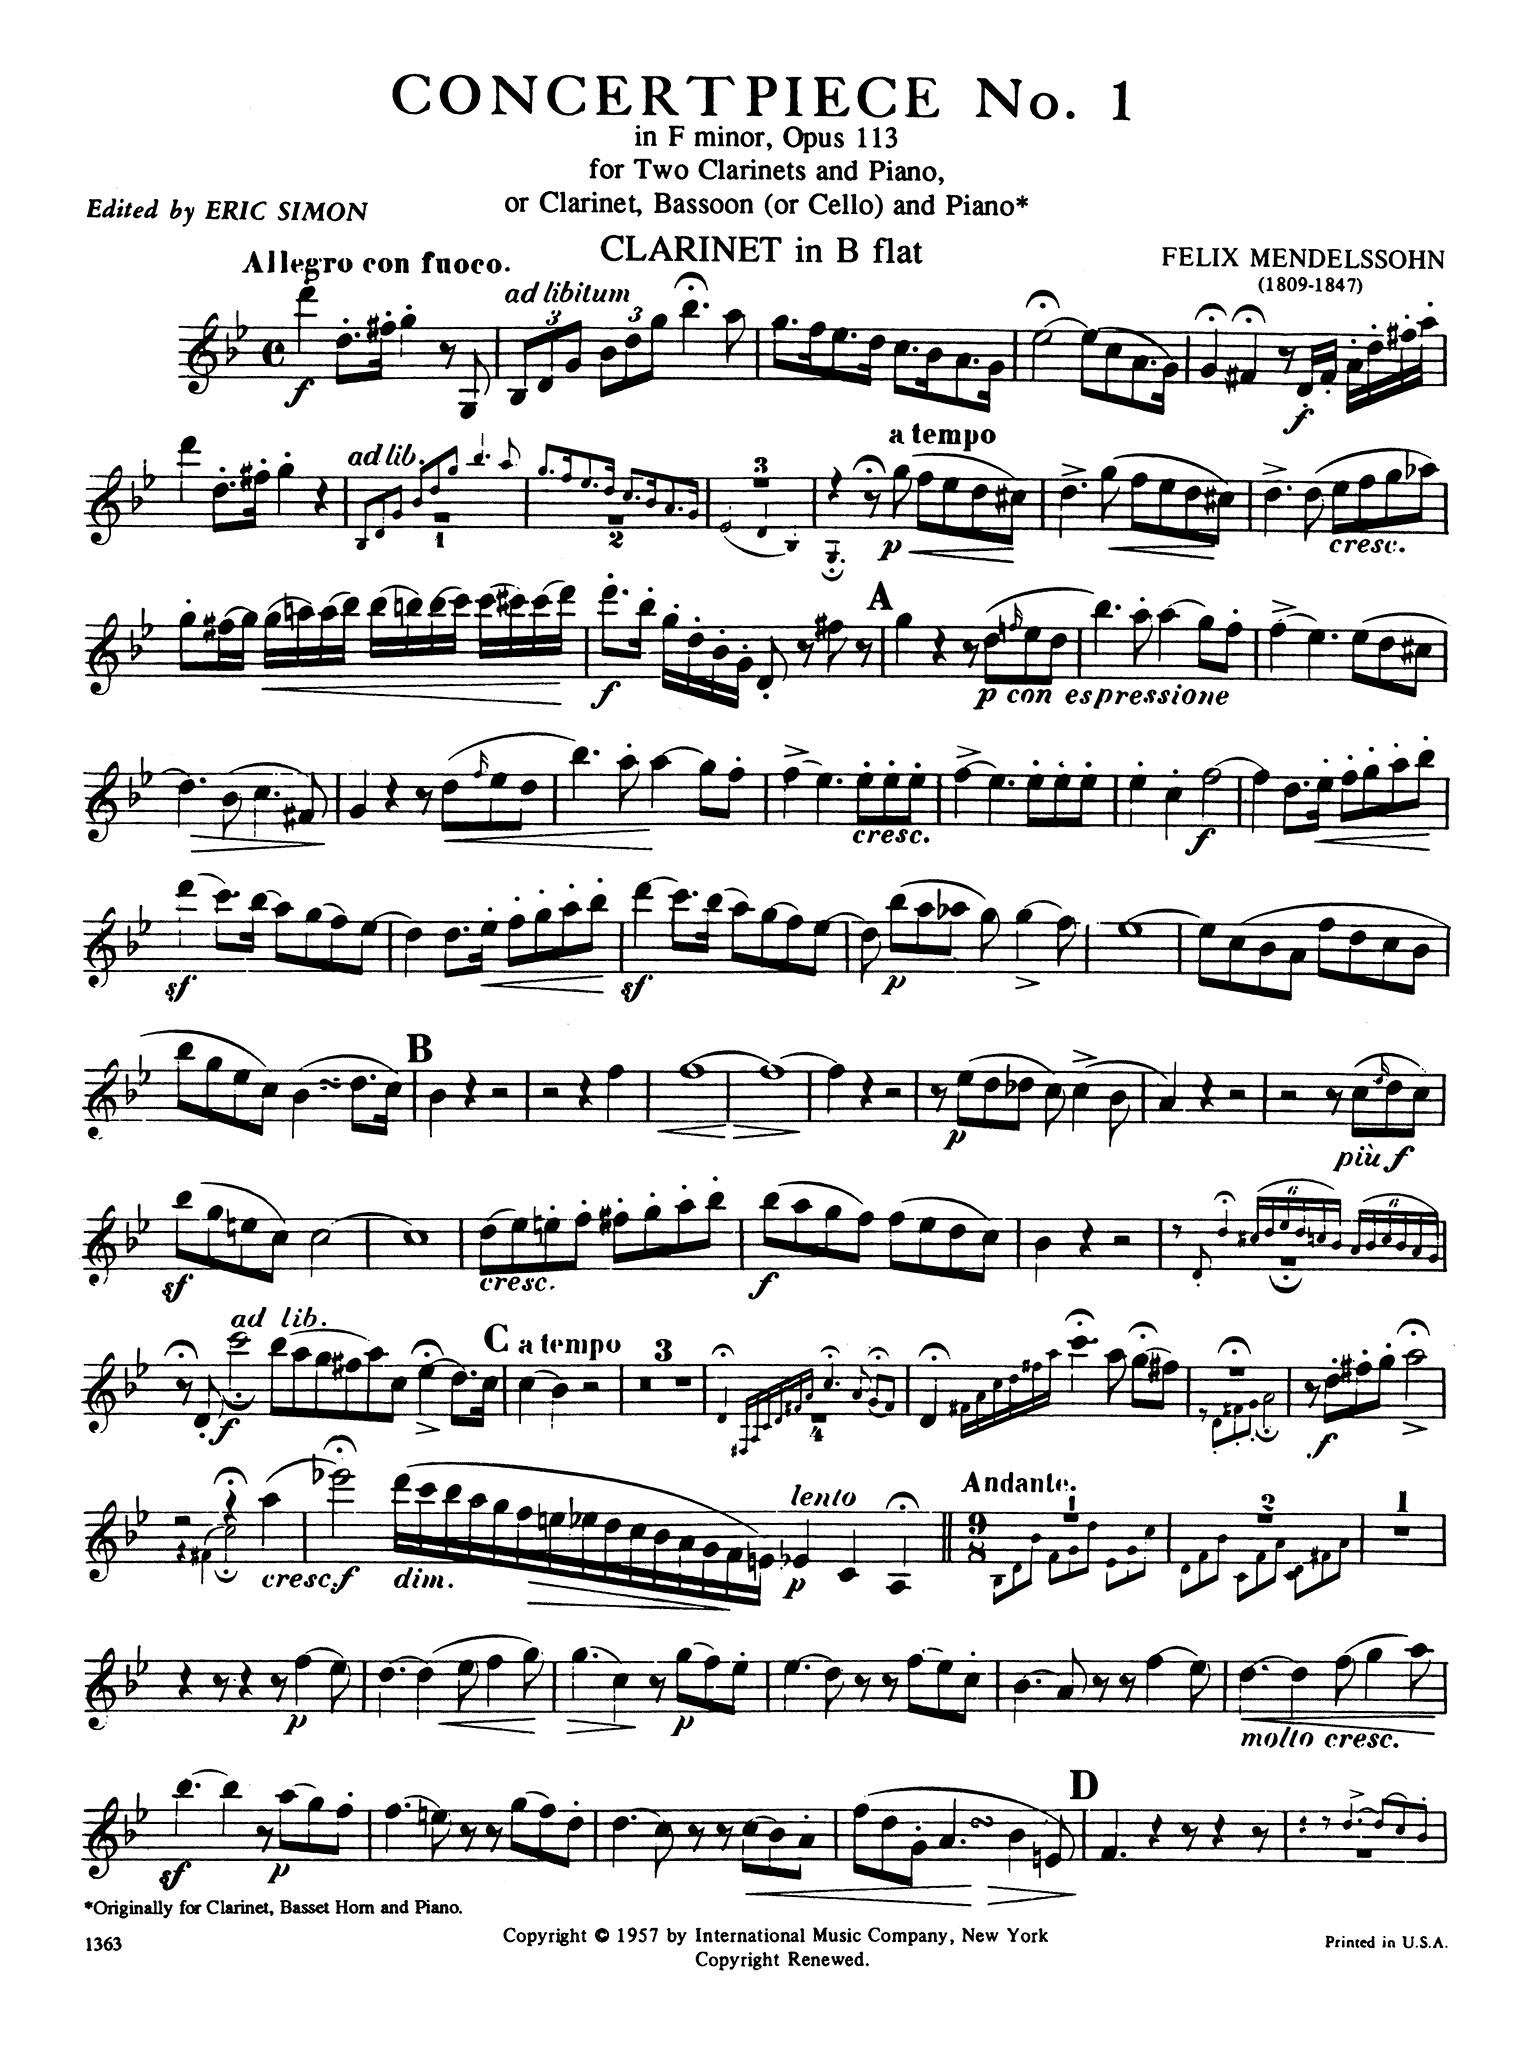 Concertpiece No. 1 in F Minor, Op. 113 First Clarinet part